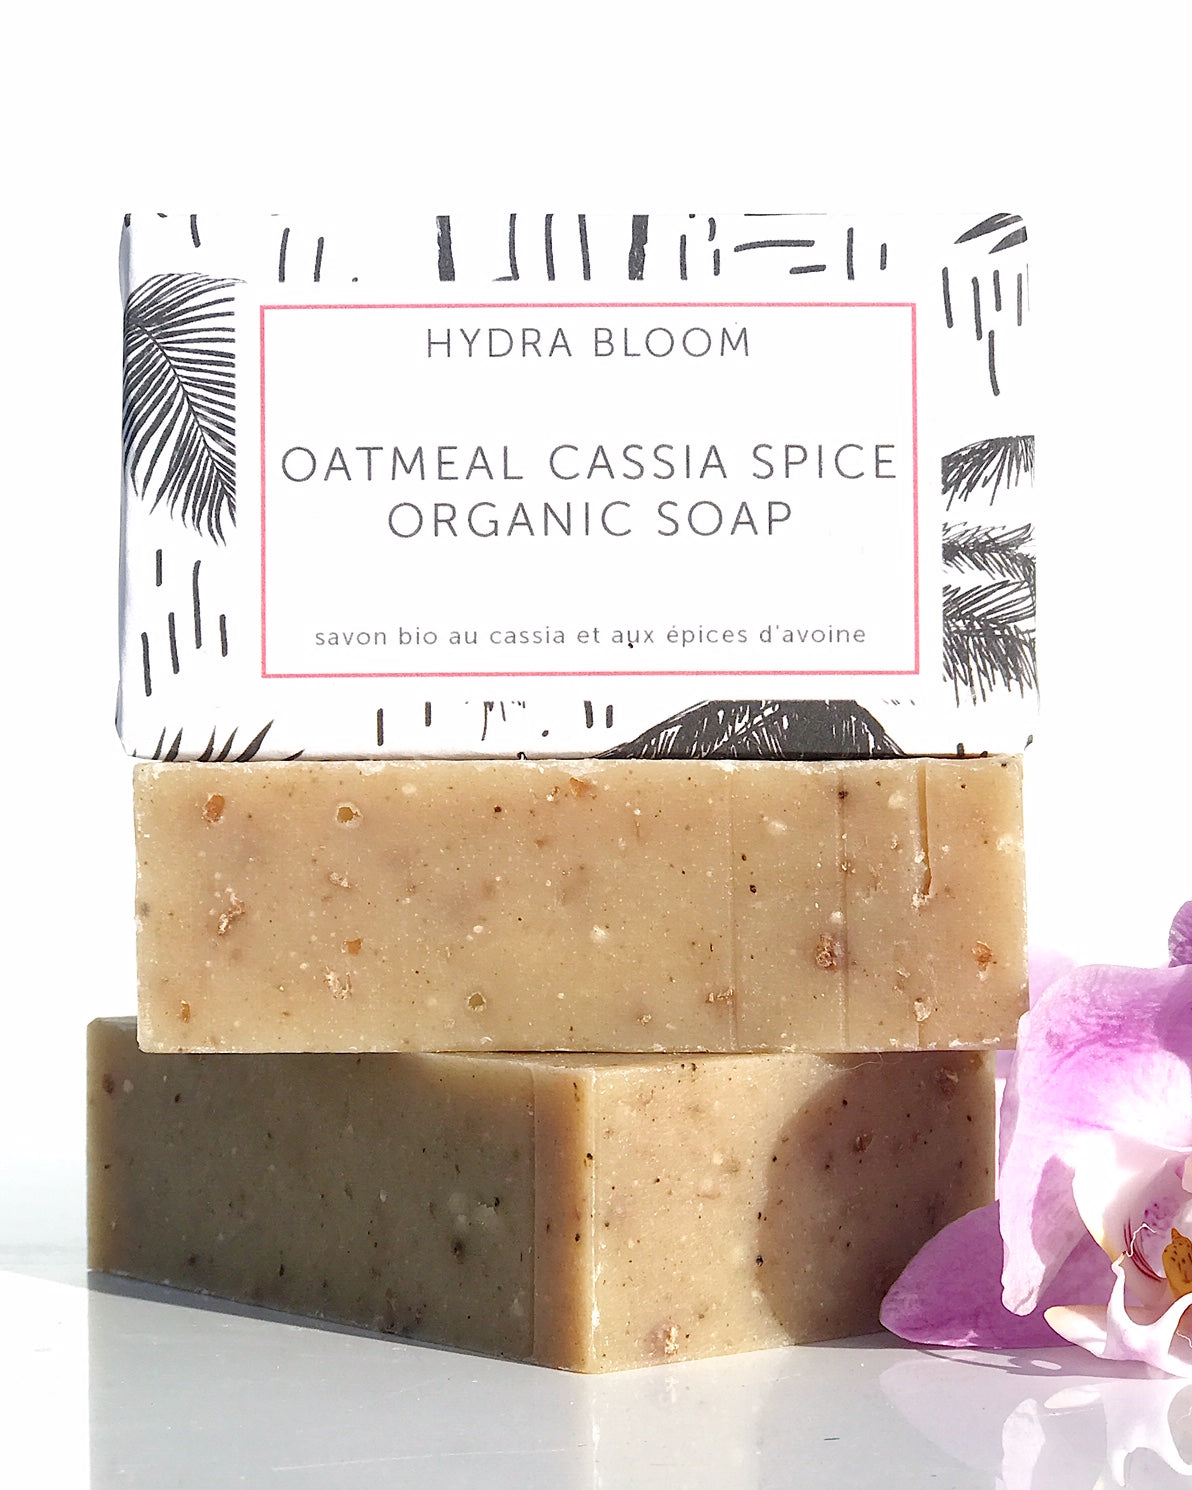 Hydra Bloom Oatmeal Cassia Spice Organic Soap | Lucy B's